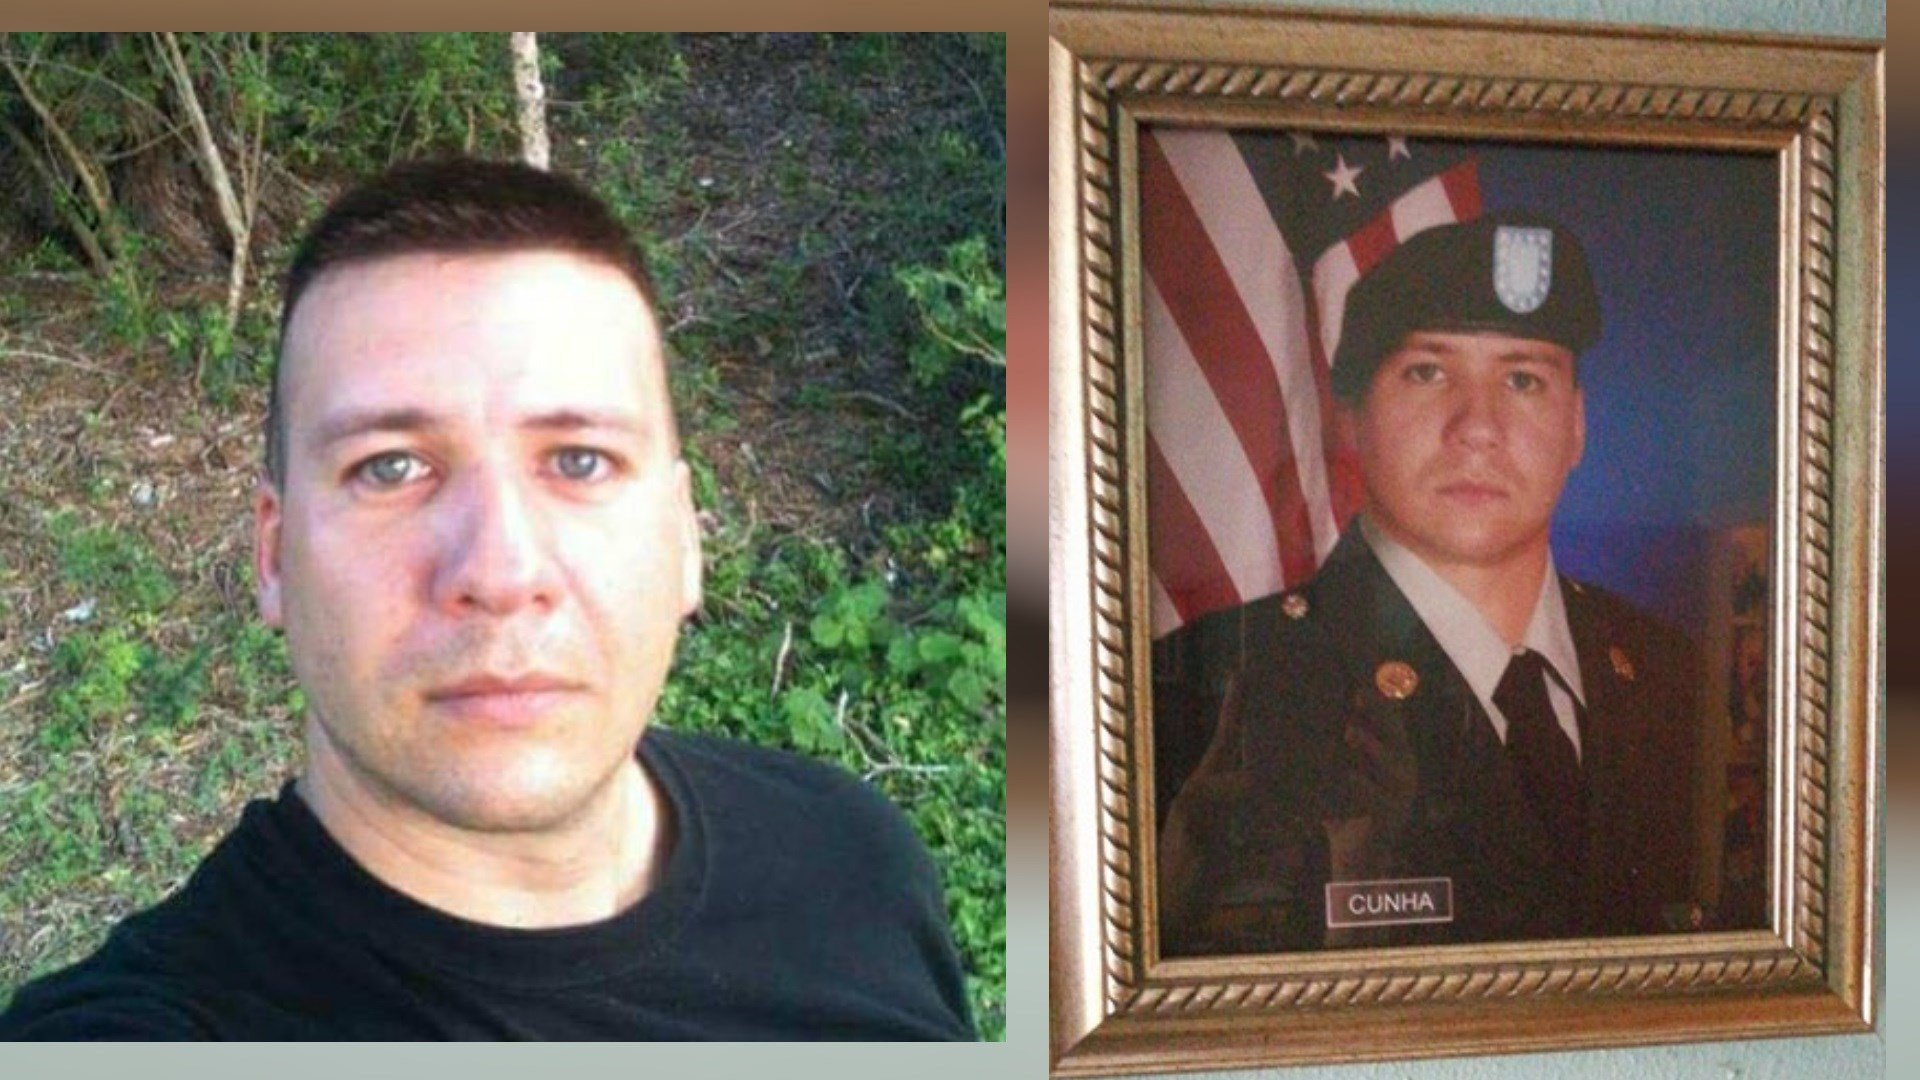 Joel Cunha was injured while serving in the military and went into training with the Army Reserves.